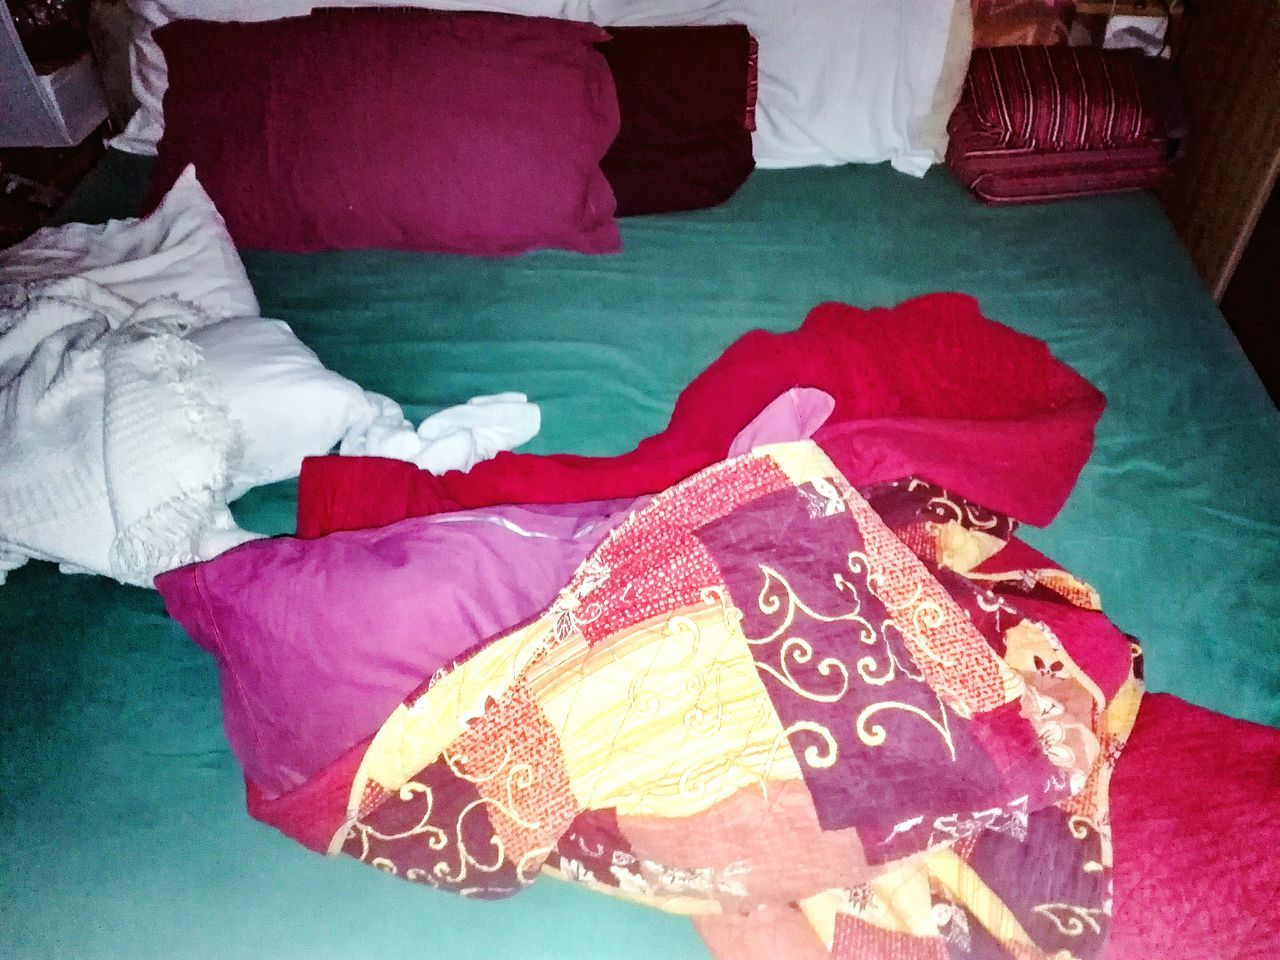 Bed Blankets Pillows Messy Room Hard Night Sleepless Nights Sheets Green Color Red Yellow